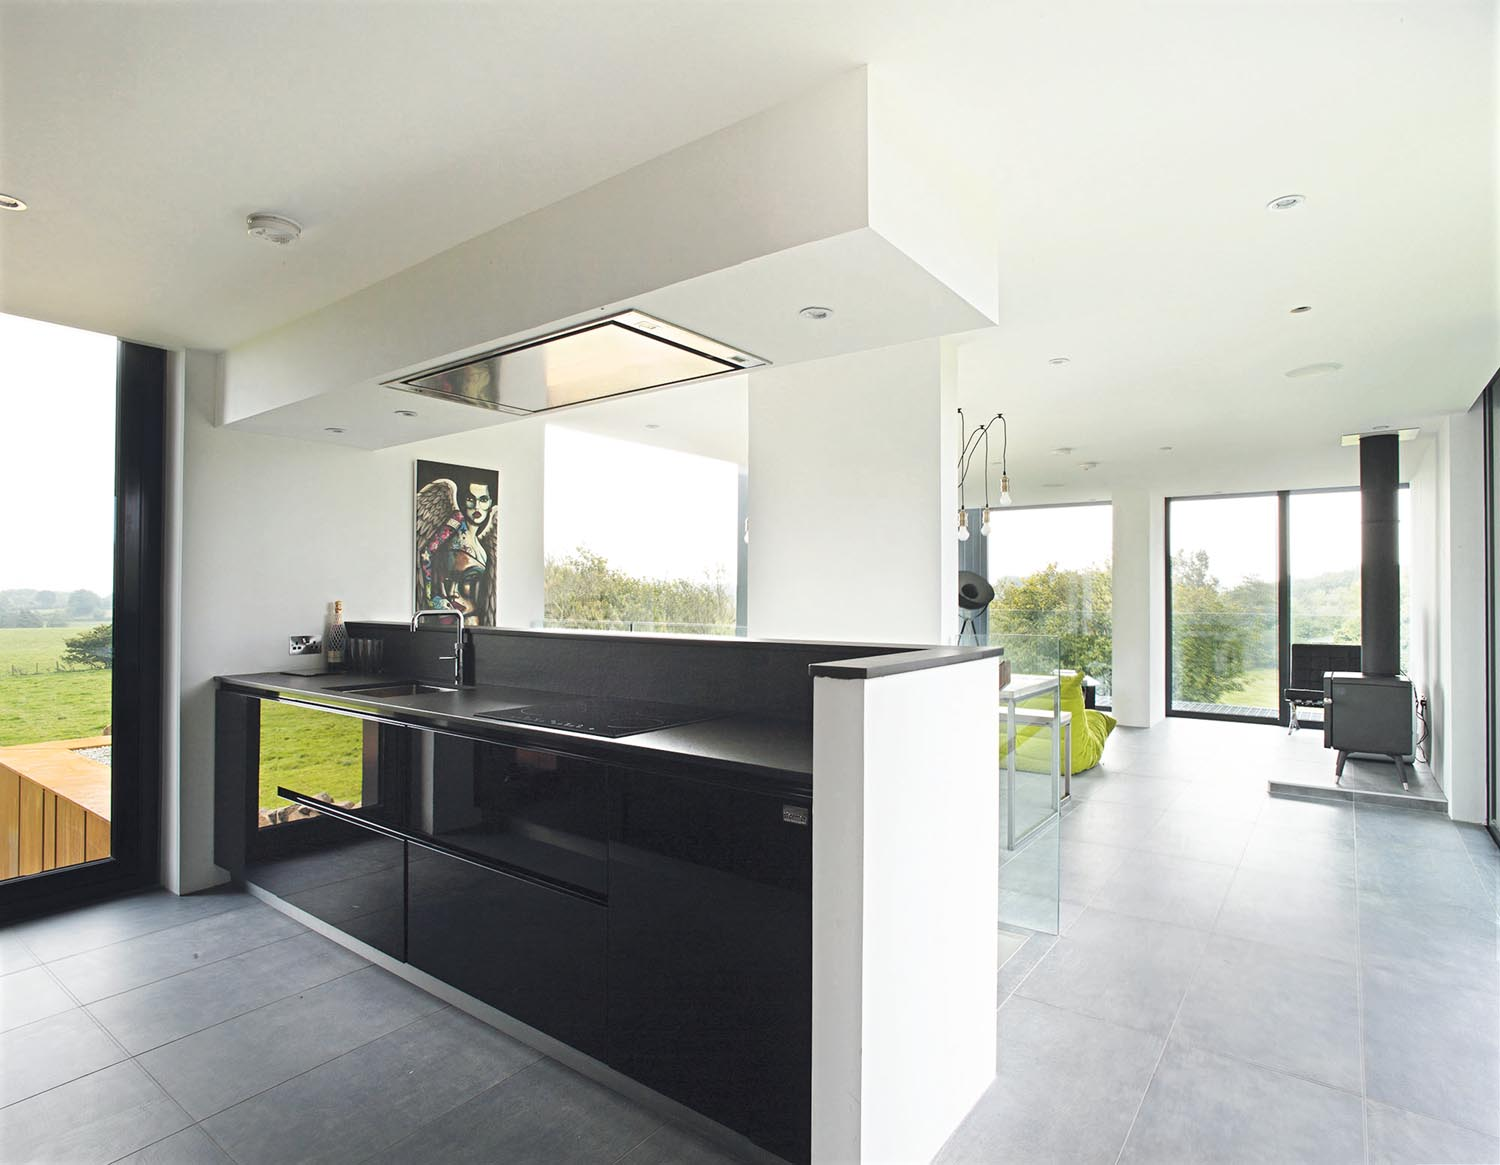 Dark gloss units define the kitchen and allow the view to remain the focus